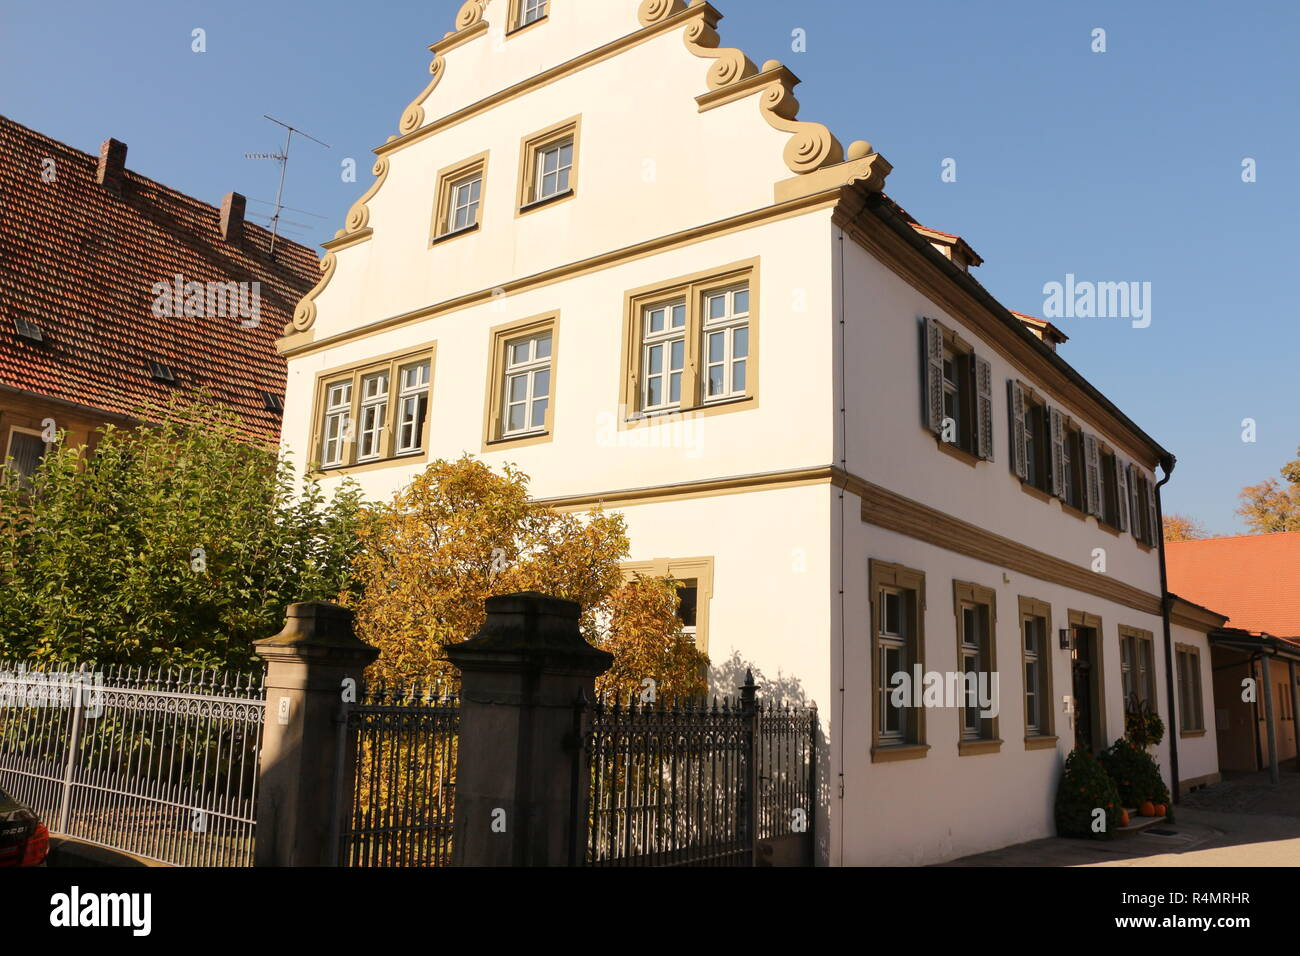 Finn Comfort Haßfurt Hassfurt Stock Photos & Hassfurt Stock Images - Alamy